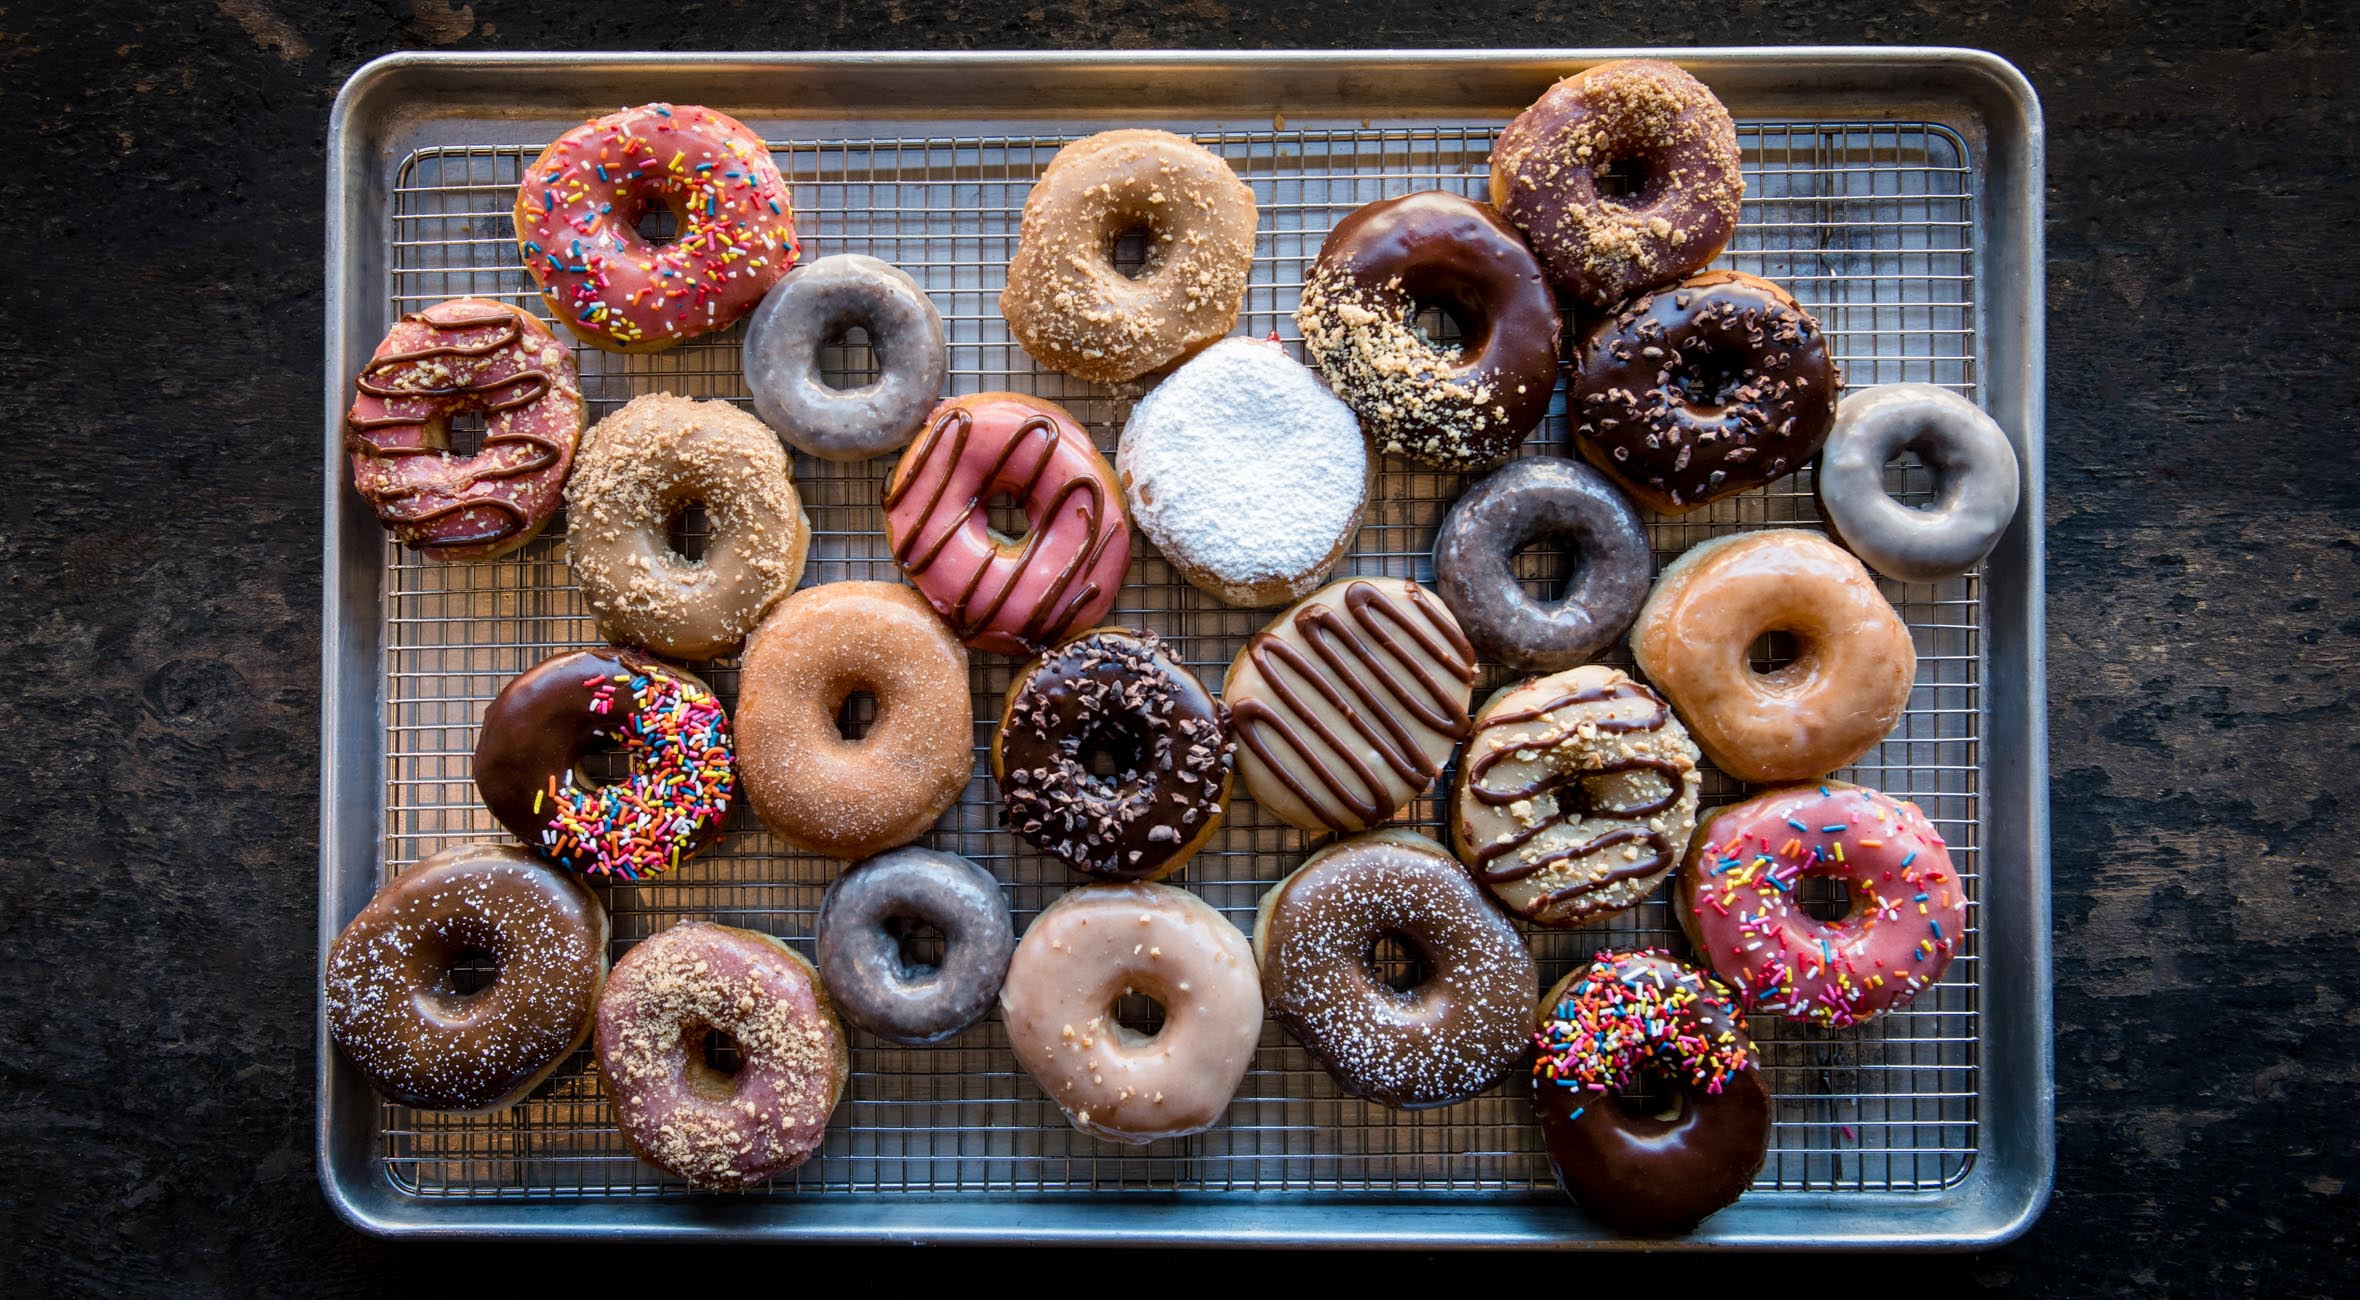 ½ Dozen Doughnuts at Dun-Well Doughnuts – Named Best Doughnuts in NYC